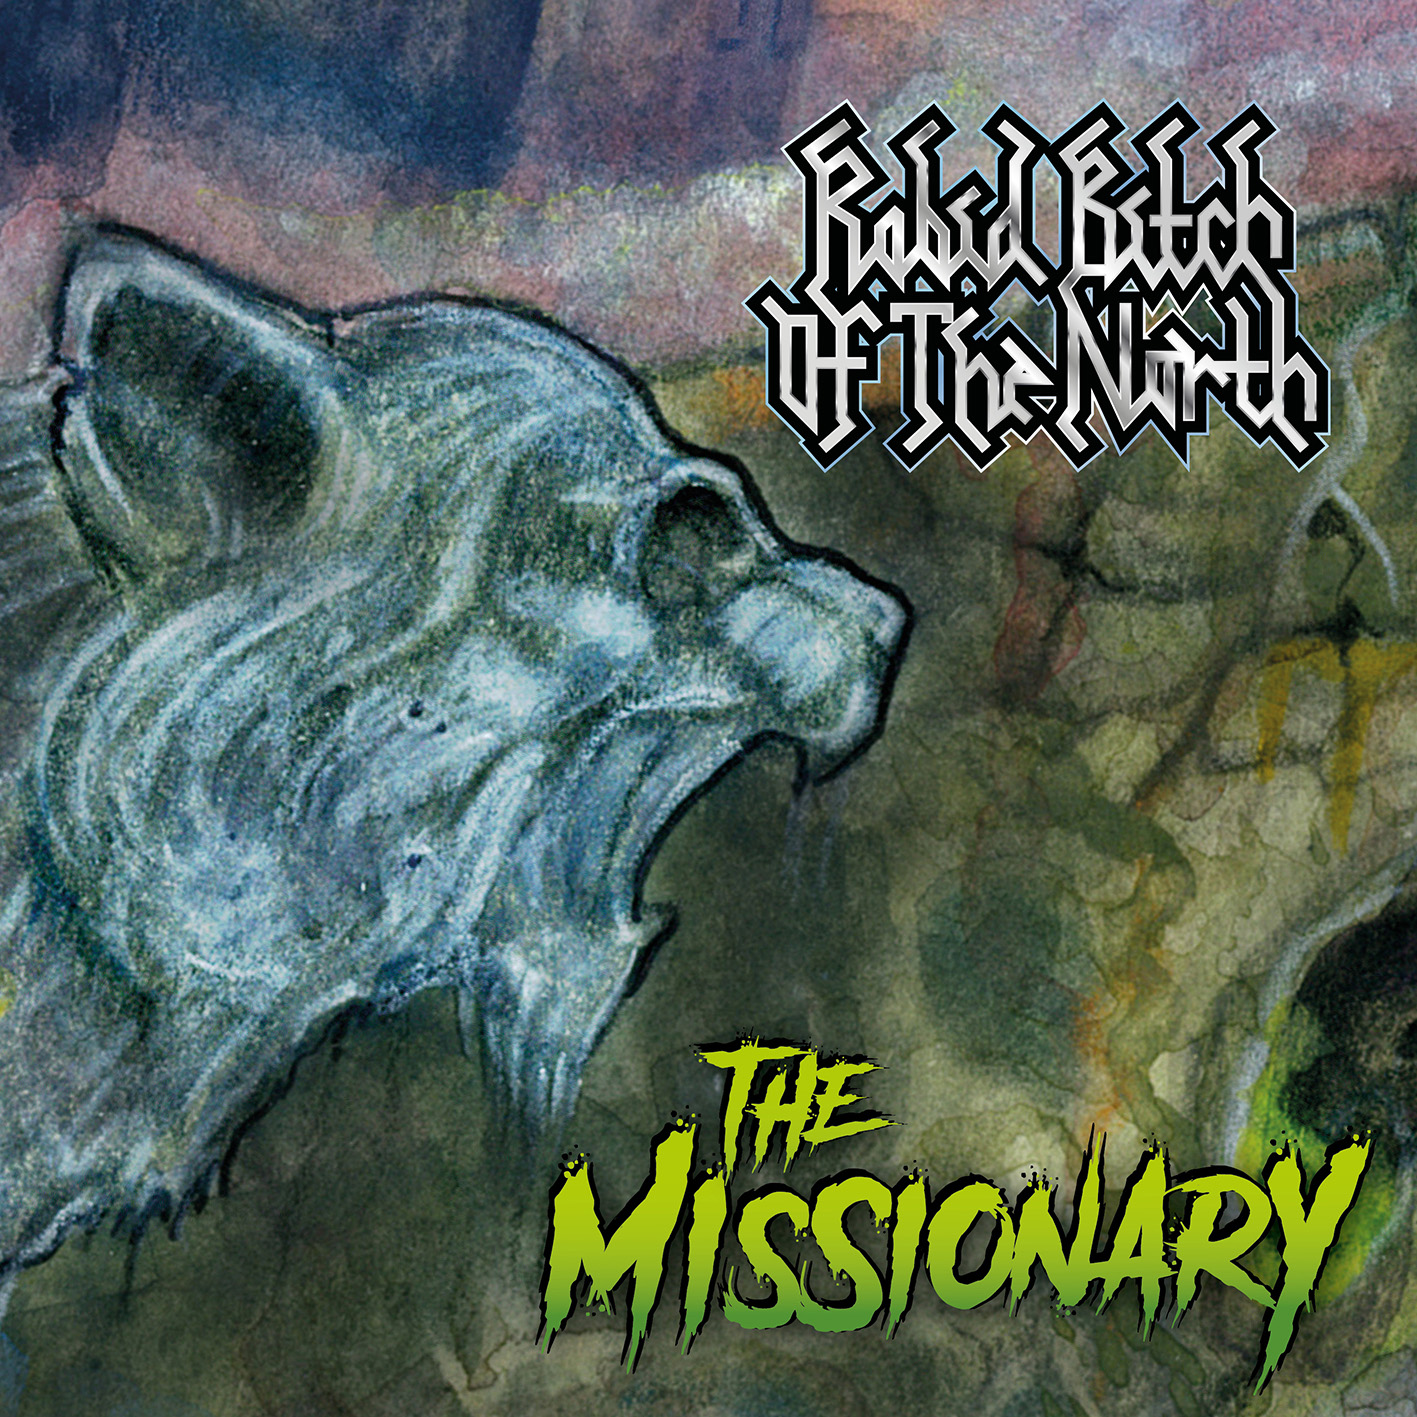 Rabid Bitch Of The North - The Missionary Artwork